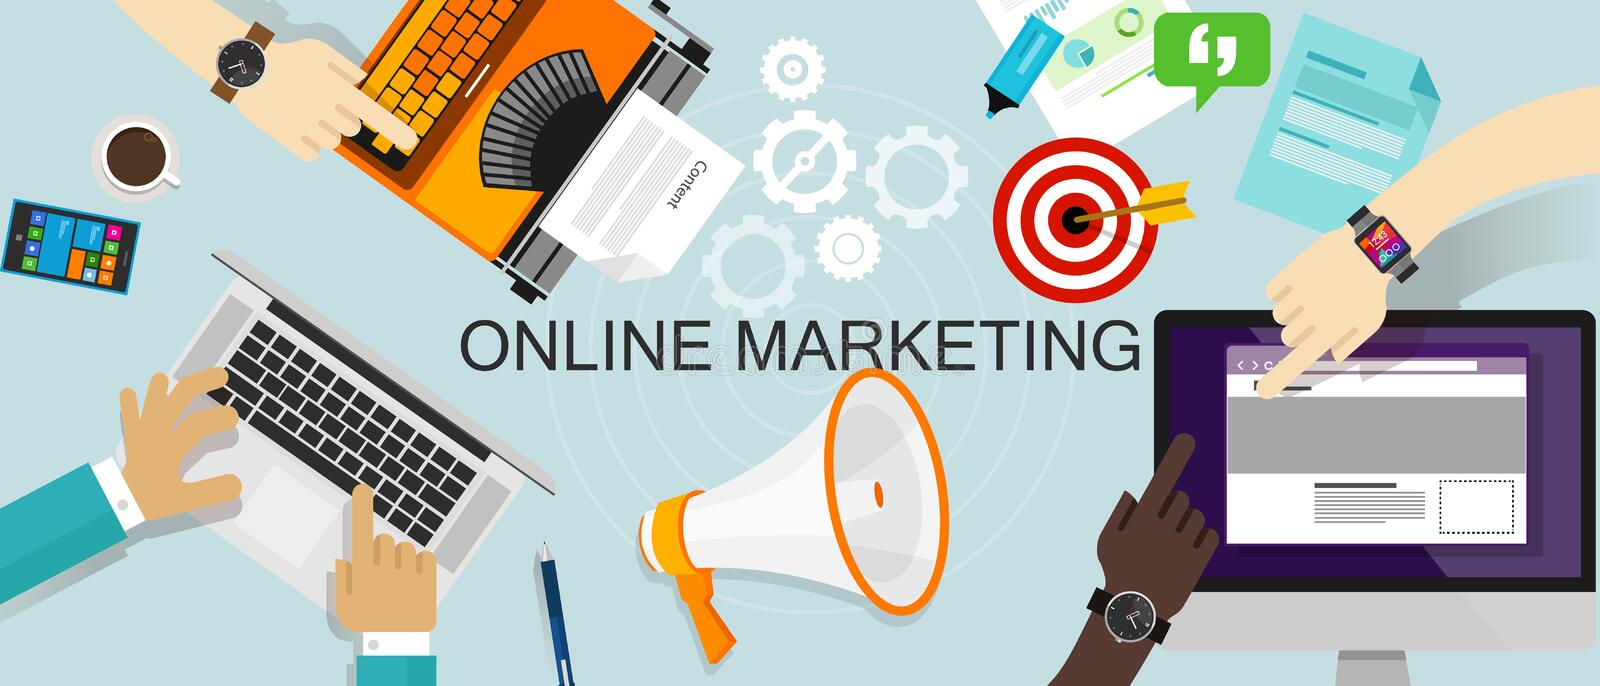 Online Marketing Bevordering het Brandmerken advertentiesweb stock illustratie